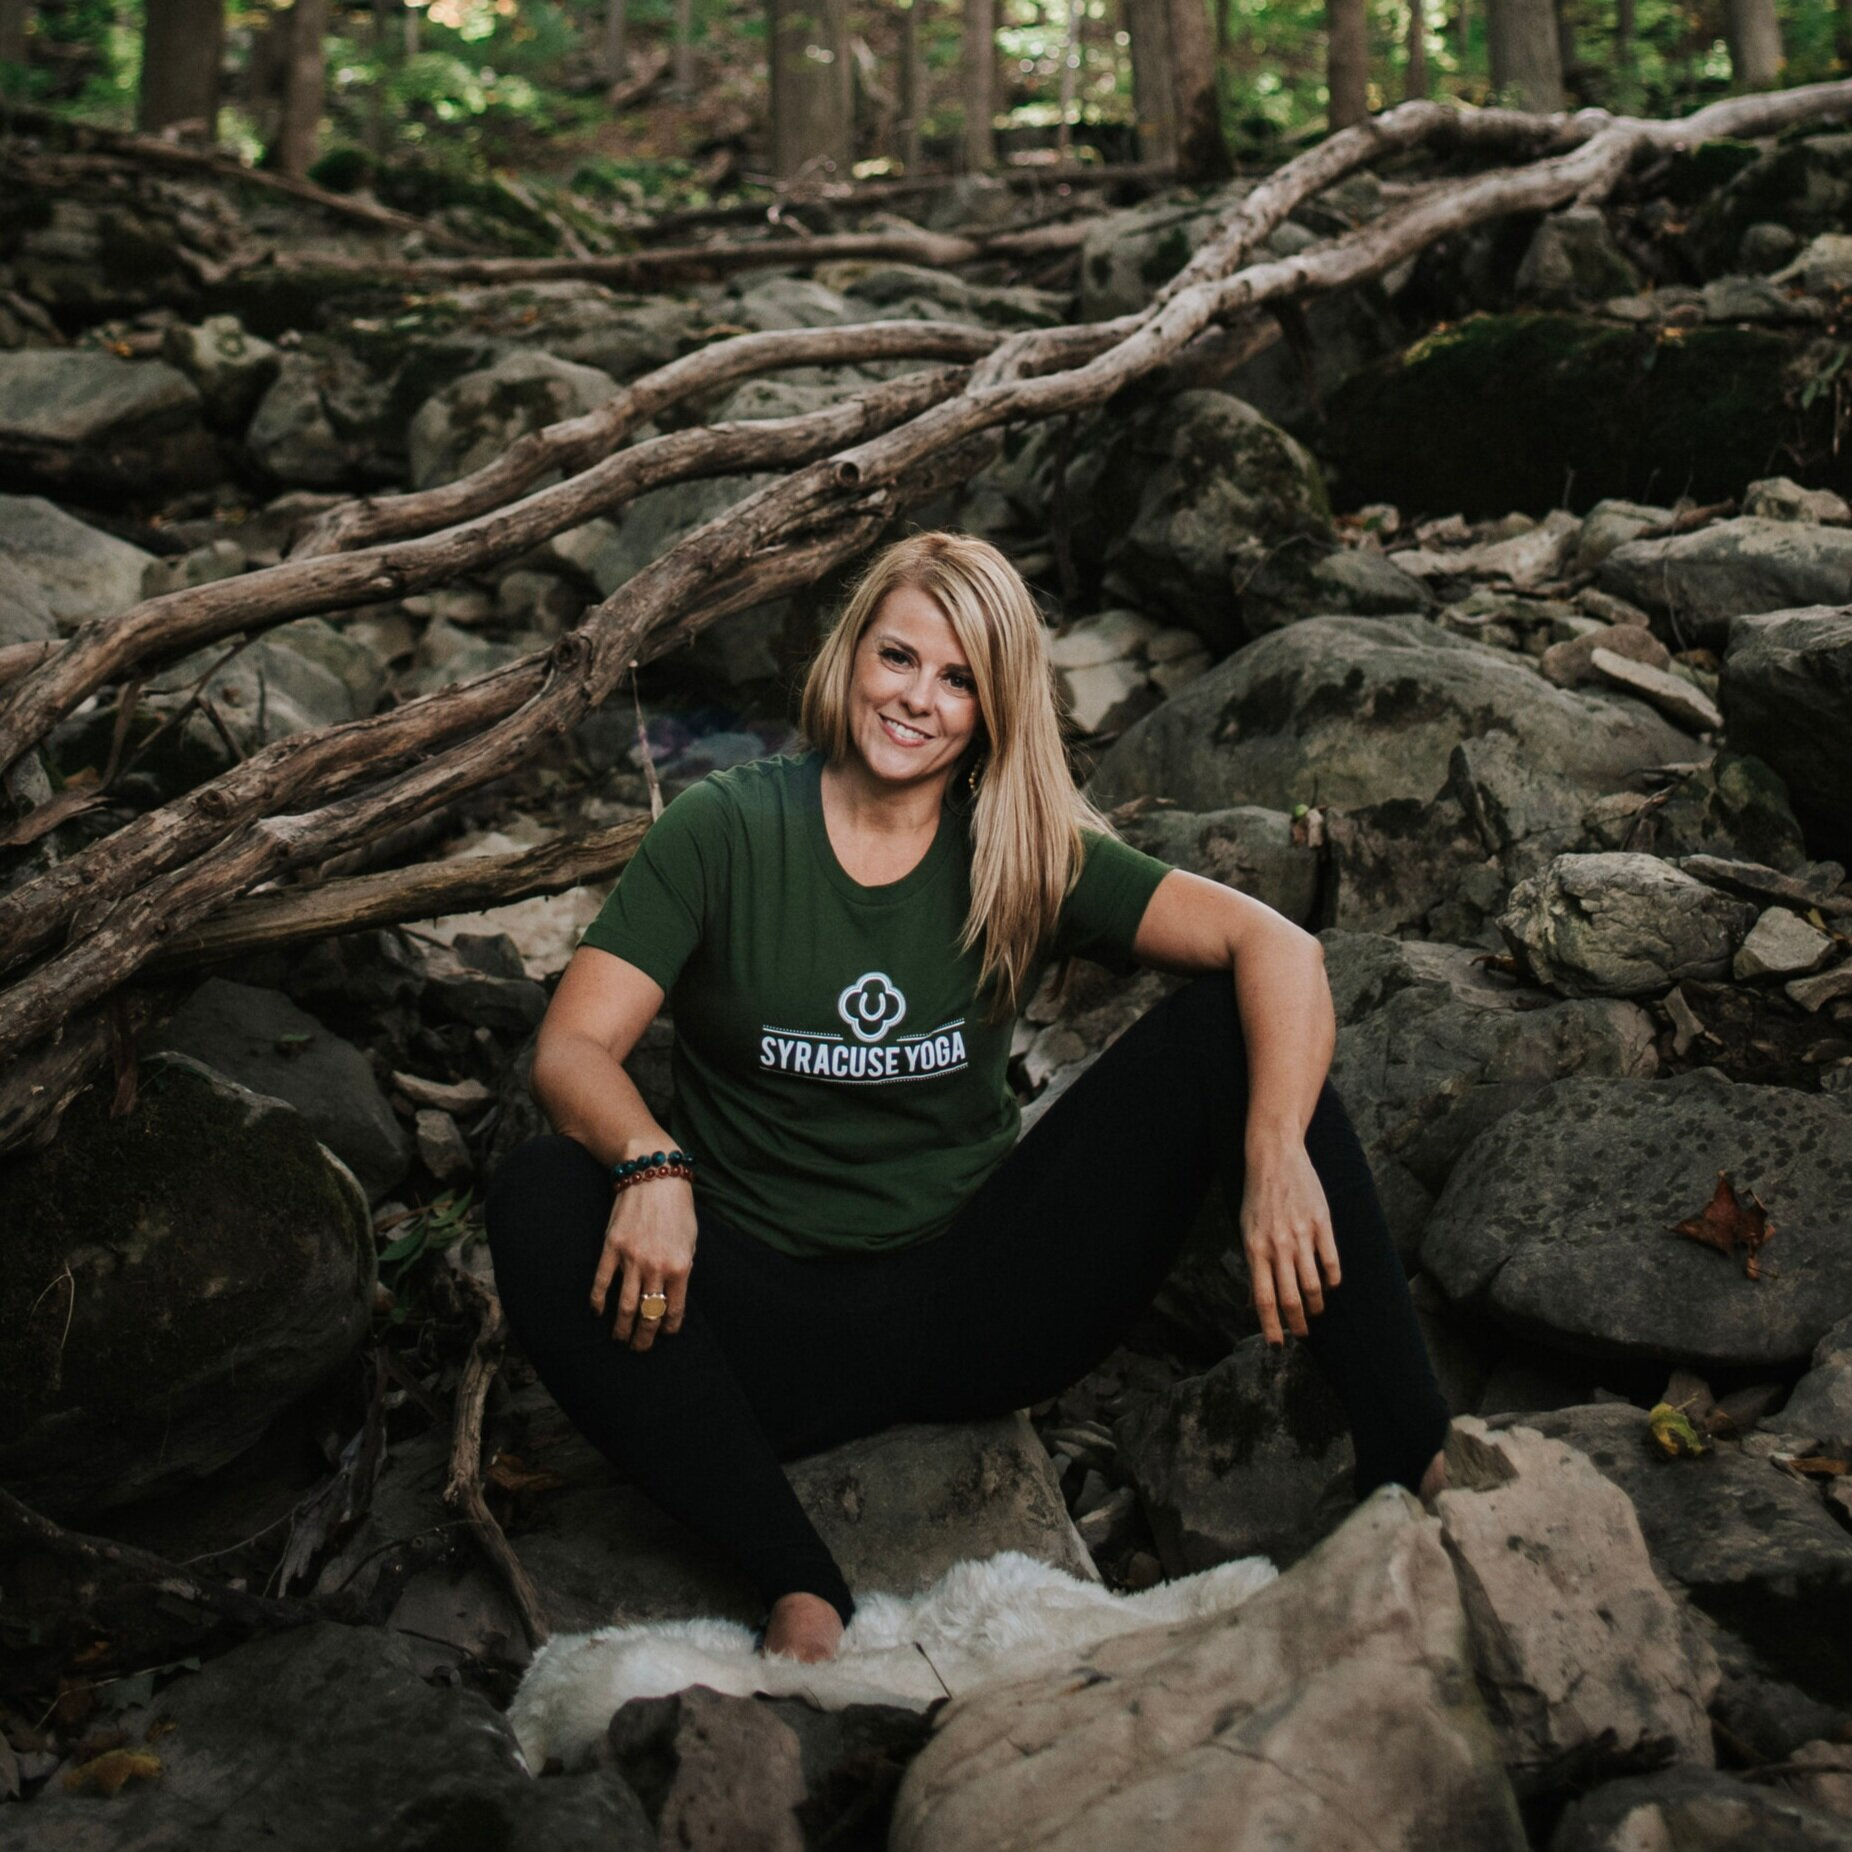 Olive Green unisex Syracuse YOga logo t-shirt - Unisex logo t-shirt in the prettiest green you have ever seen!Available in S-XLPurchase HERE, price includes shipping